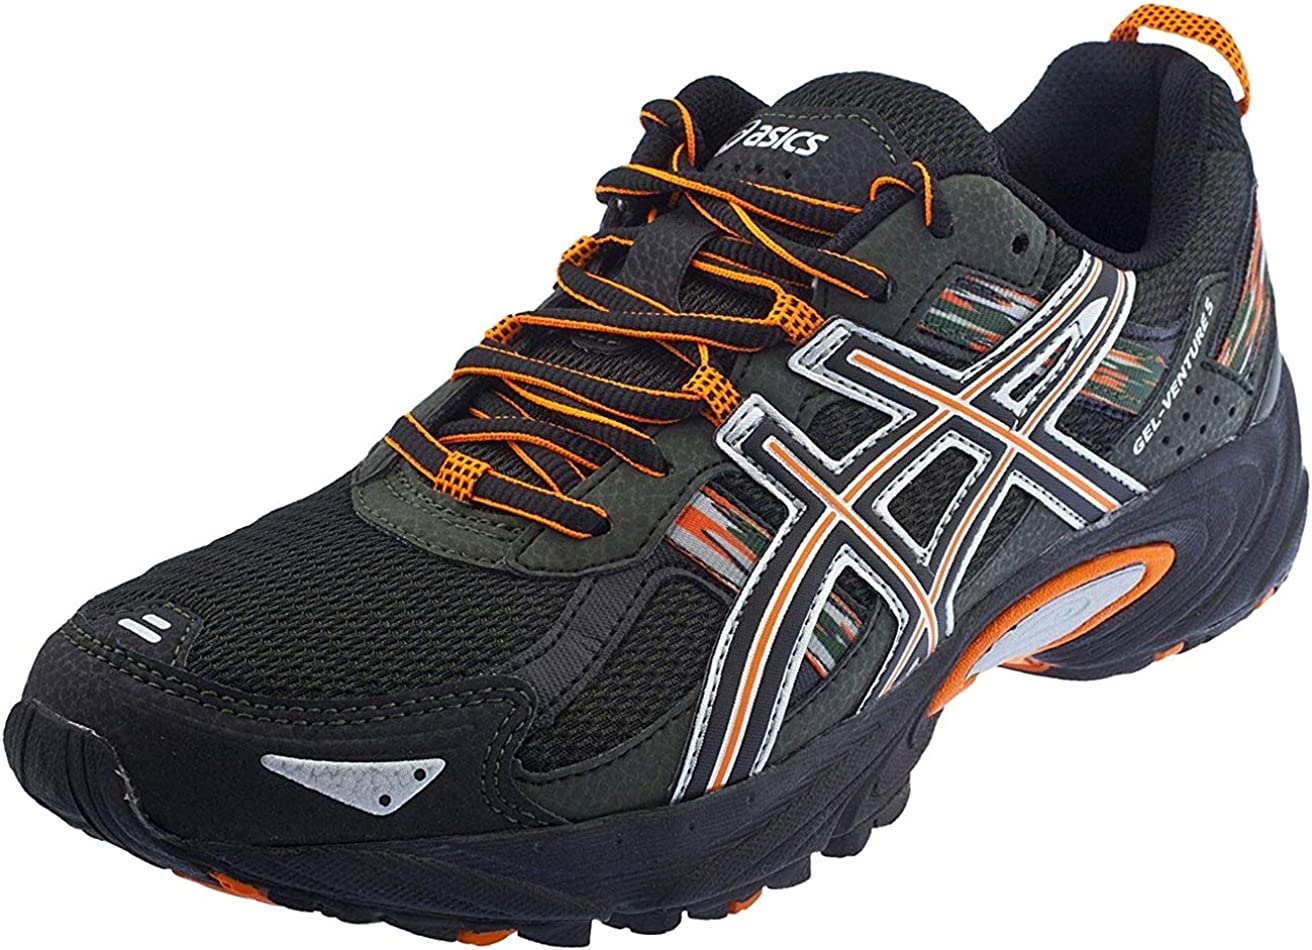 ASICS Men s Gel Venture 5 Trail Running Shoe, 11.5 D M US, Black Shocking Orange Duffel Bag